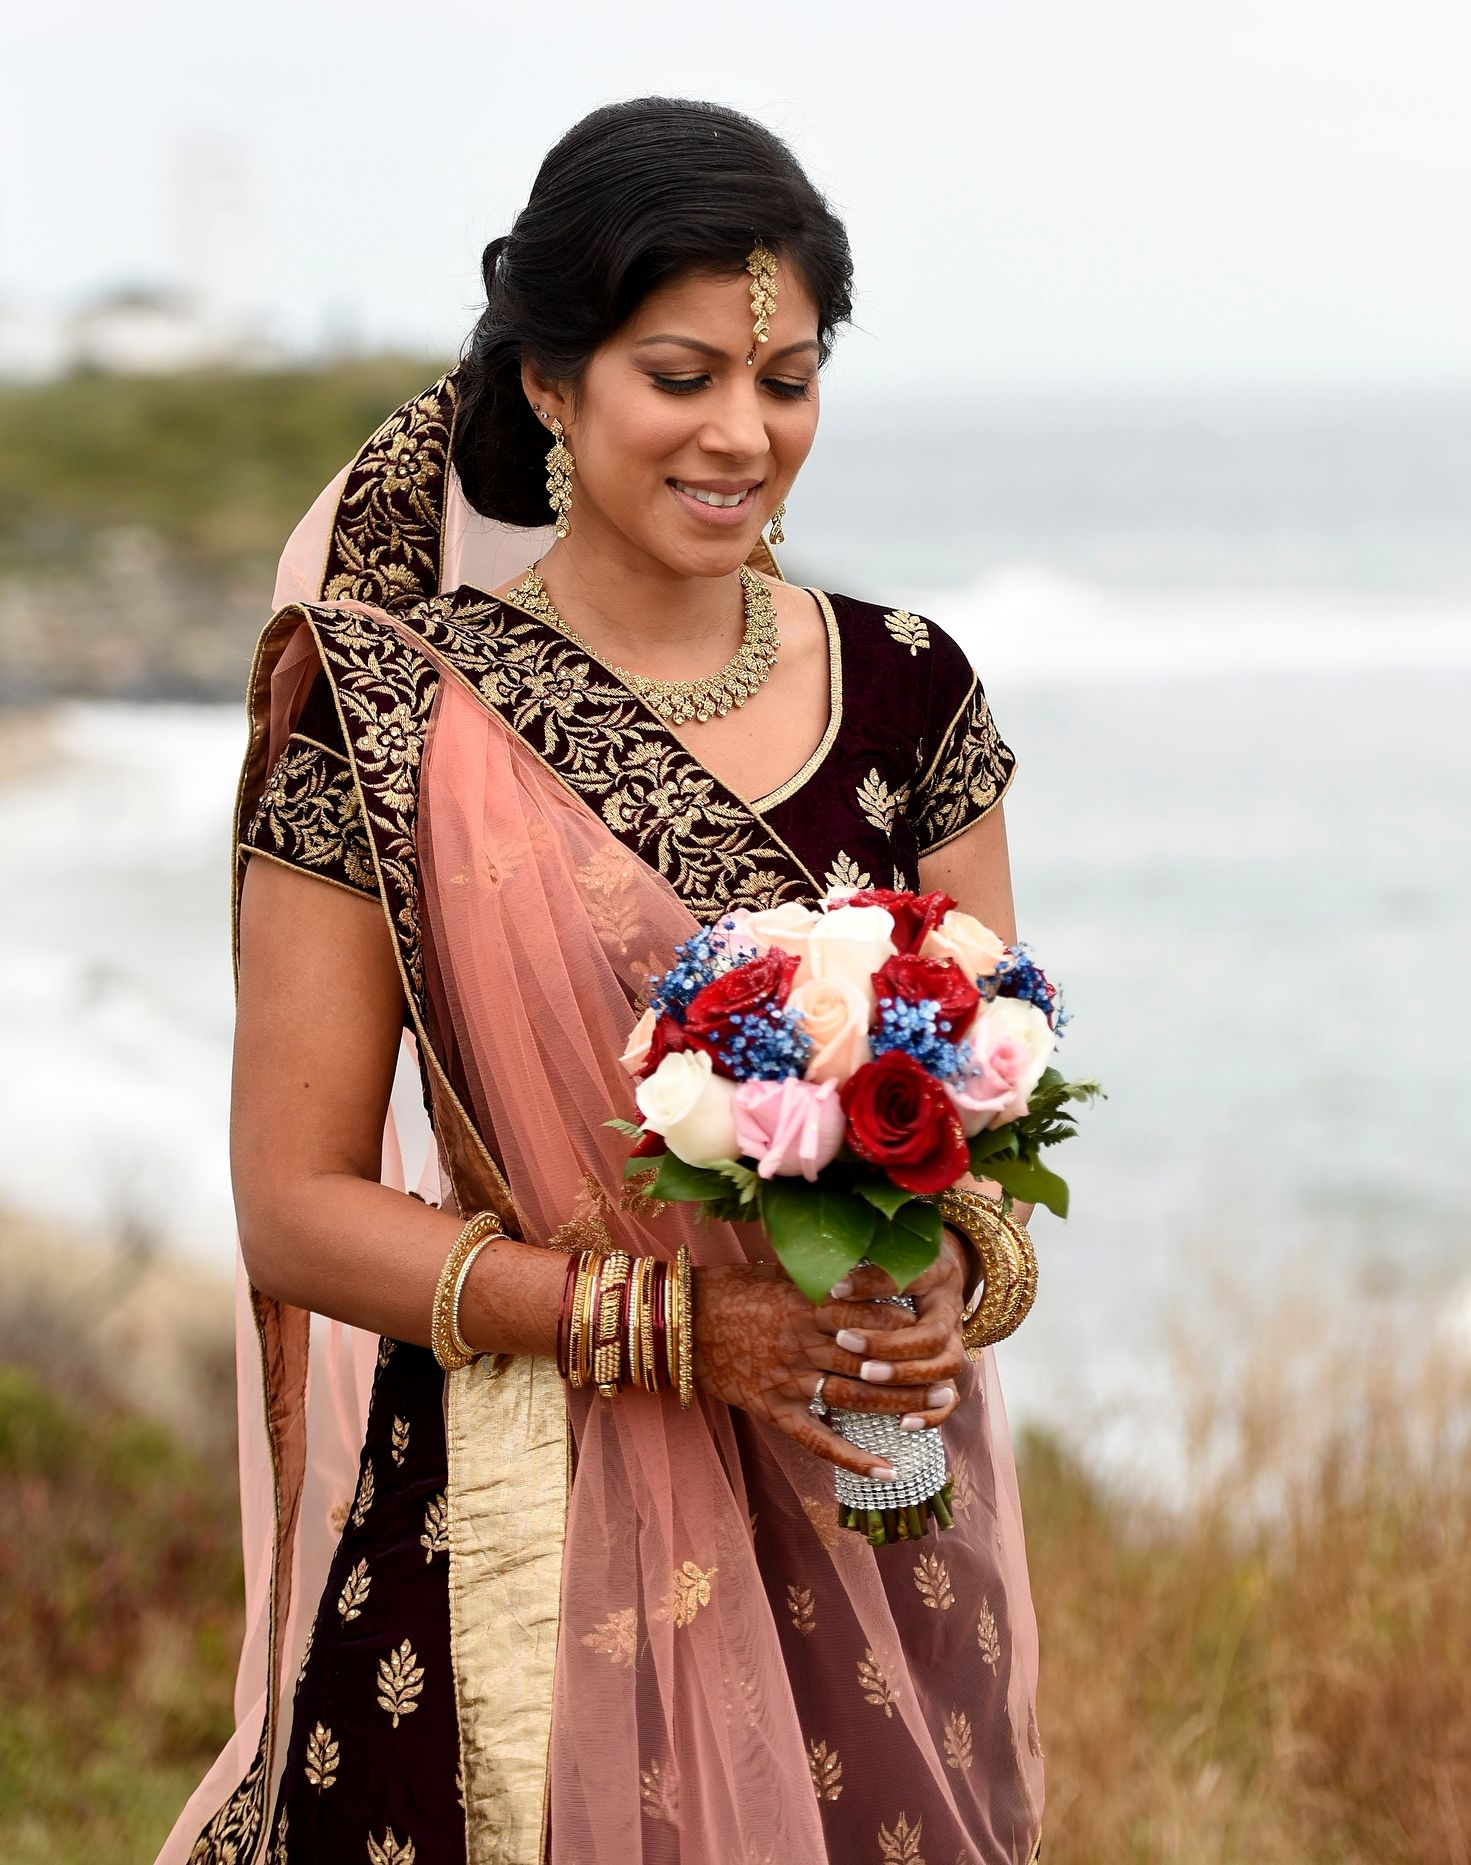 A Hindu Bride With Bouquet Before Her Montauk Wedding